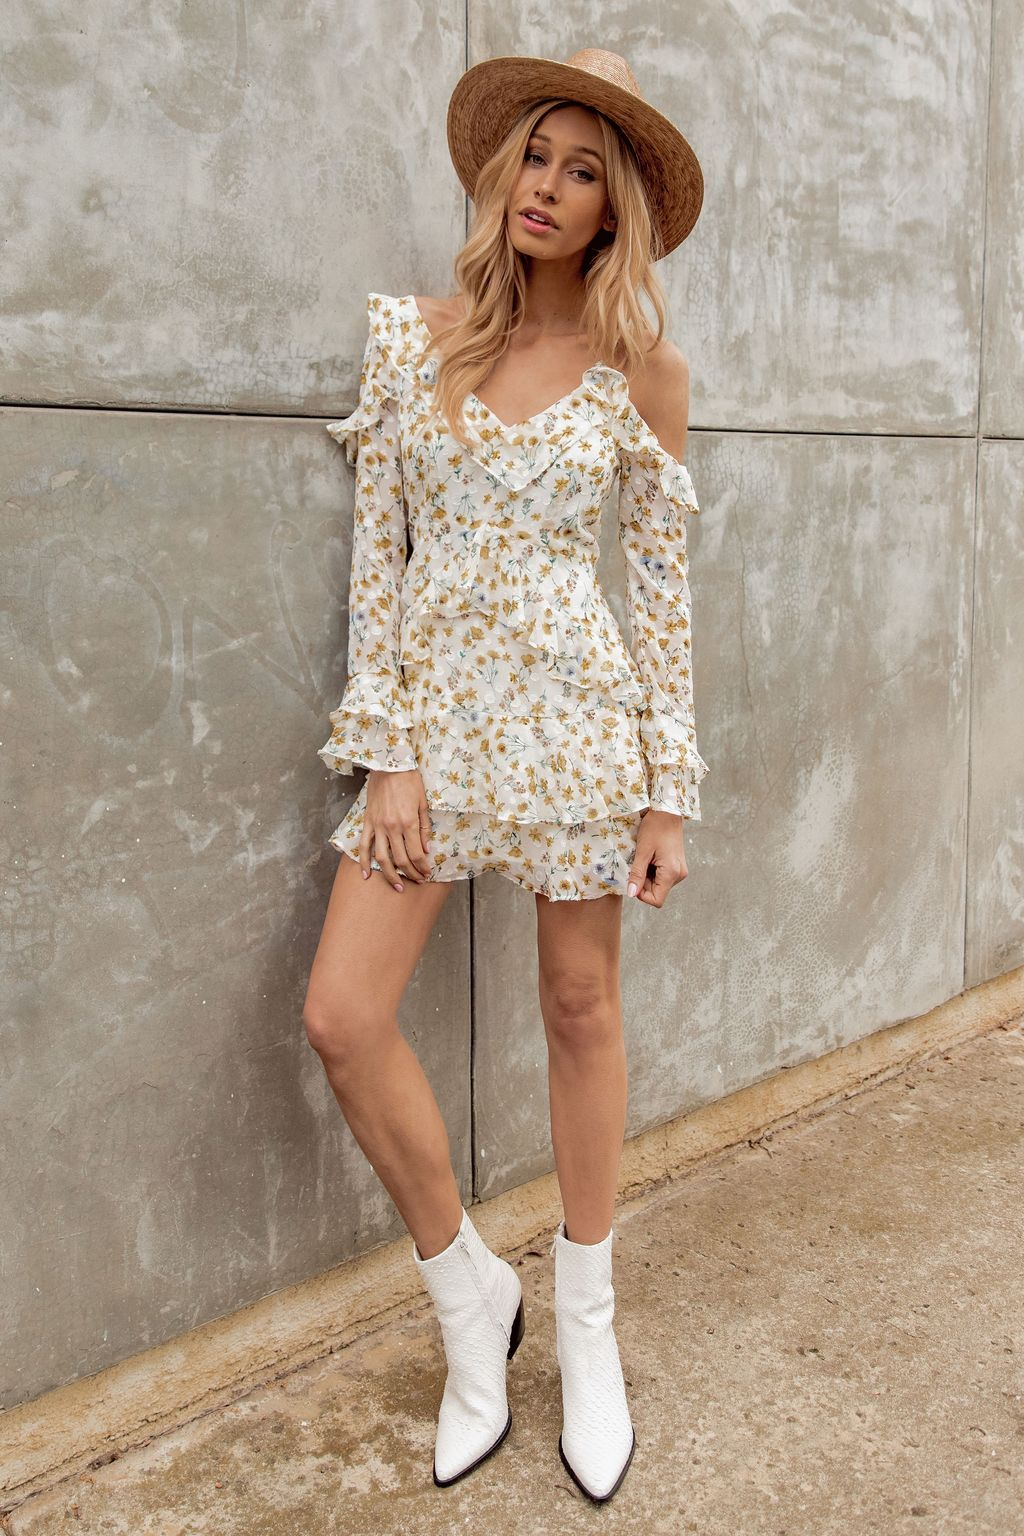 Rewind to Rome Floral Dress 12th Tribe Casual summer